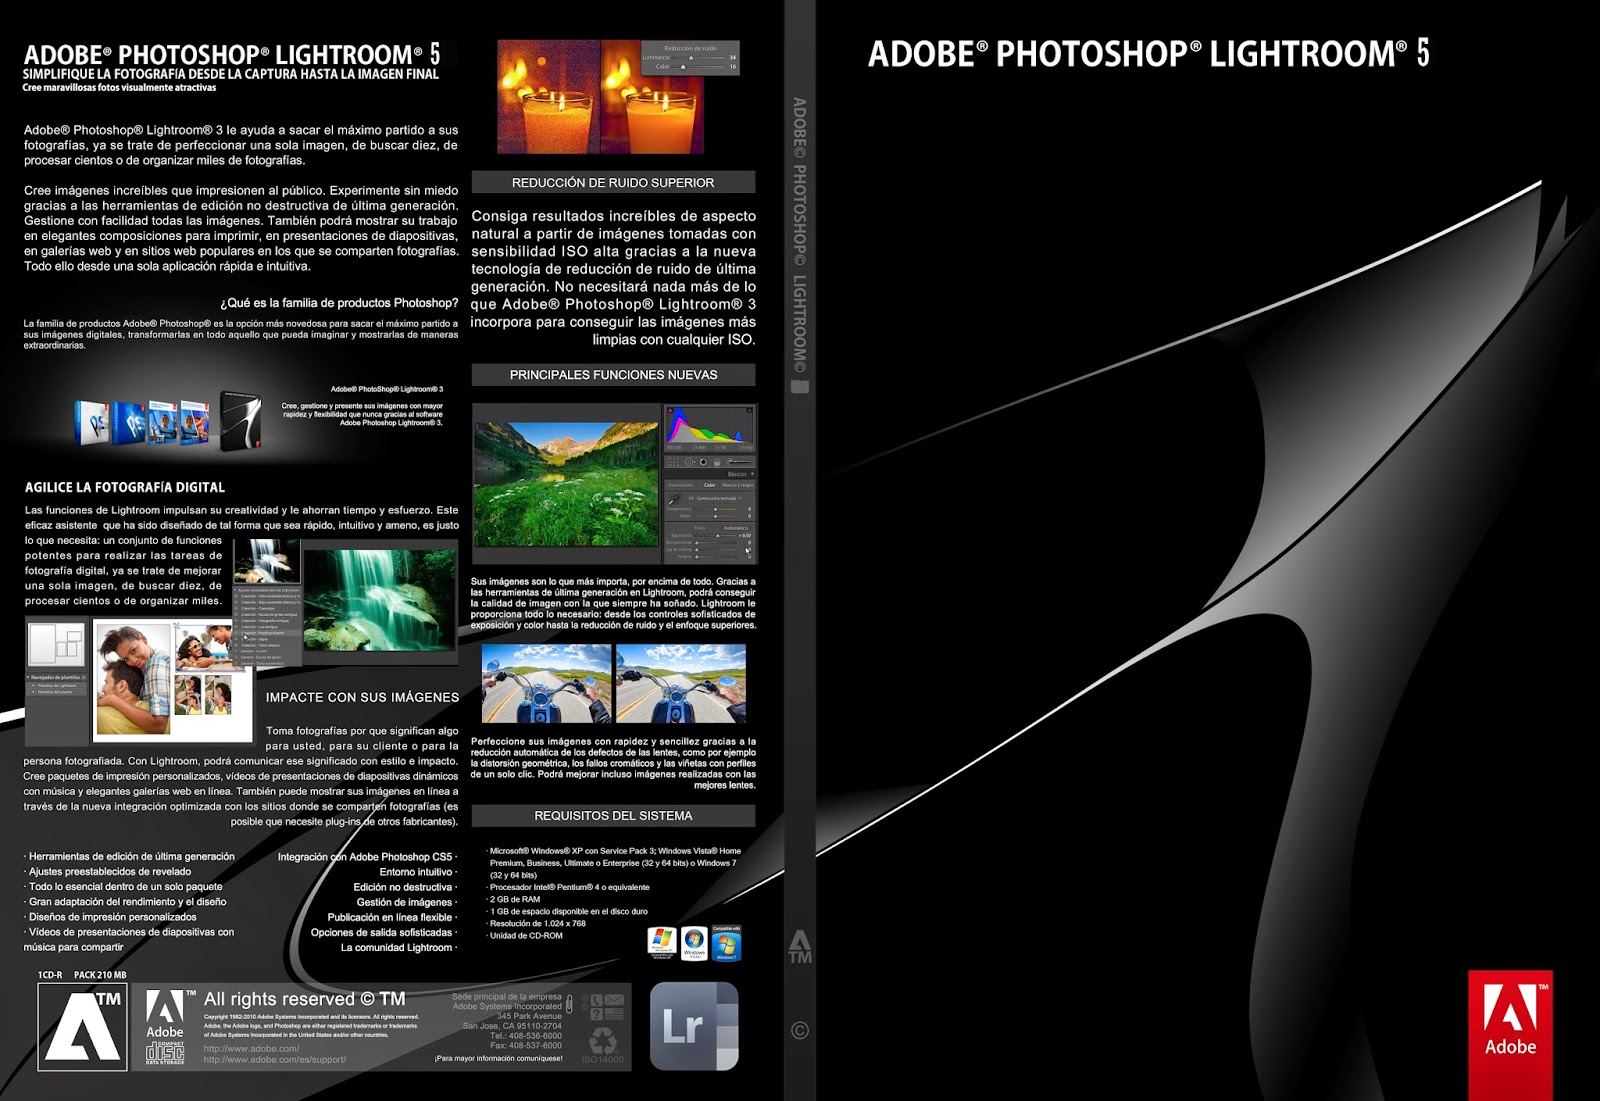 Download Adobe Photoshop Lightroom 5.6 Multi 2014 Adobe Photoshop Lightroom 5 XANDAODOWNLOAD